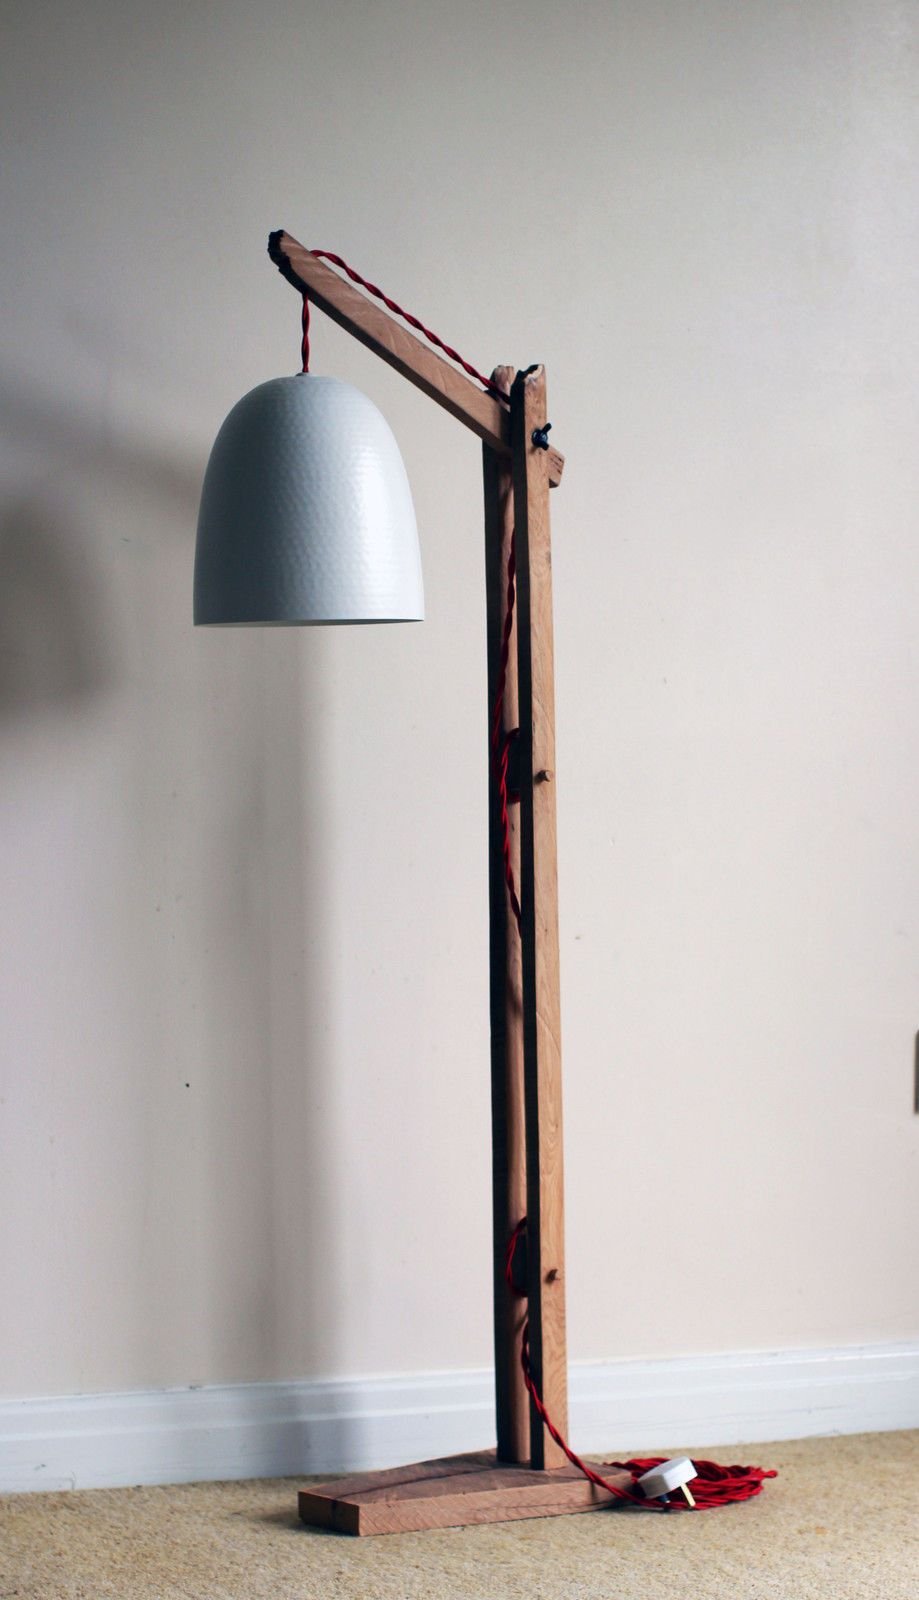 Fancy Standing Lamps Details About Vintage Wooden Stand Lamp Floor Lamp Standing In